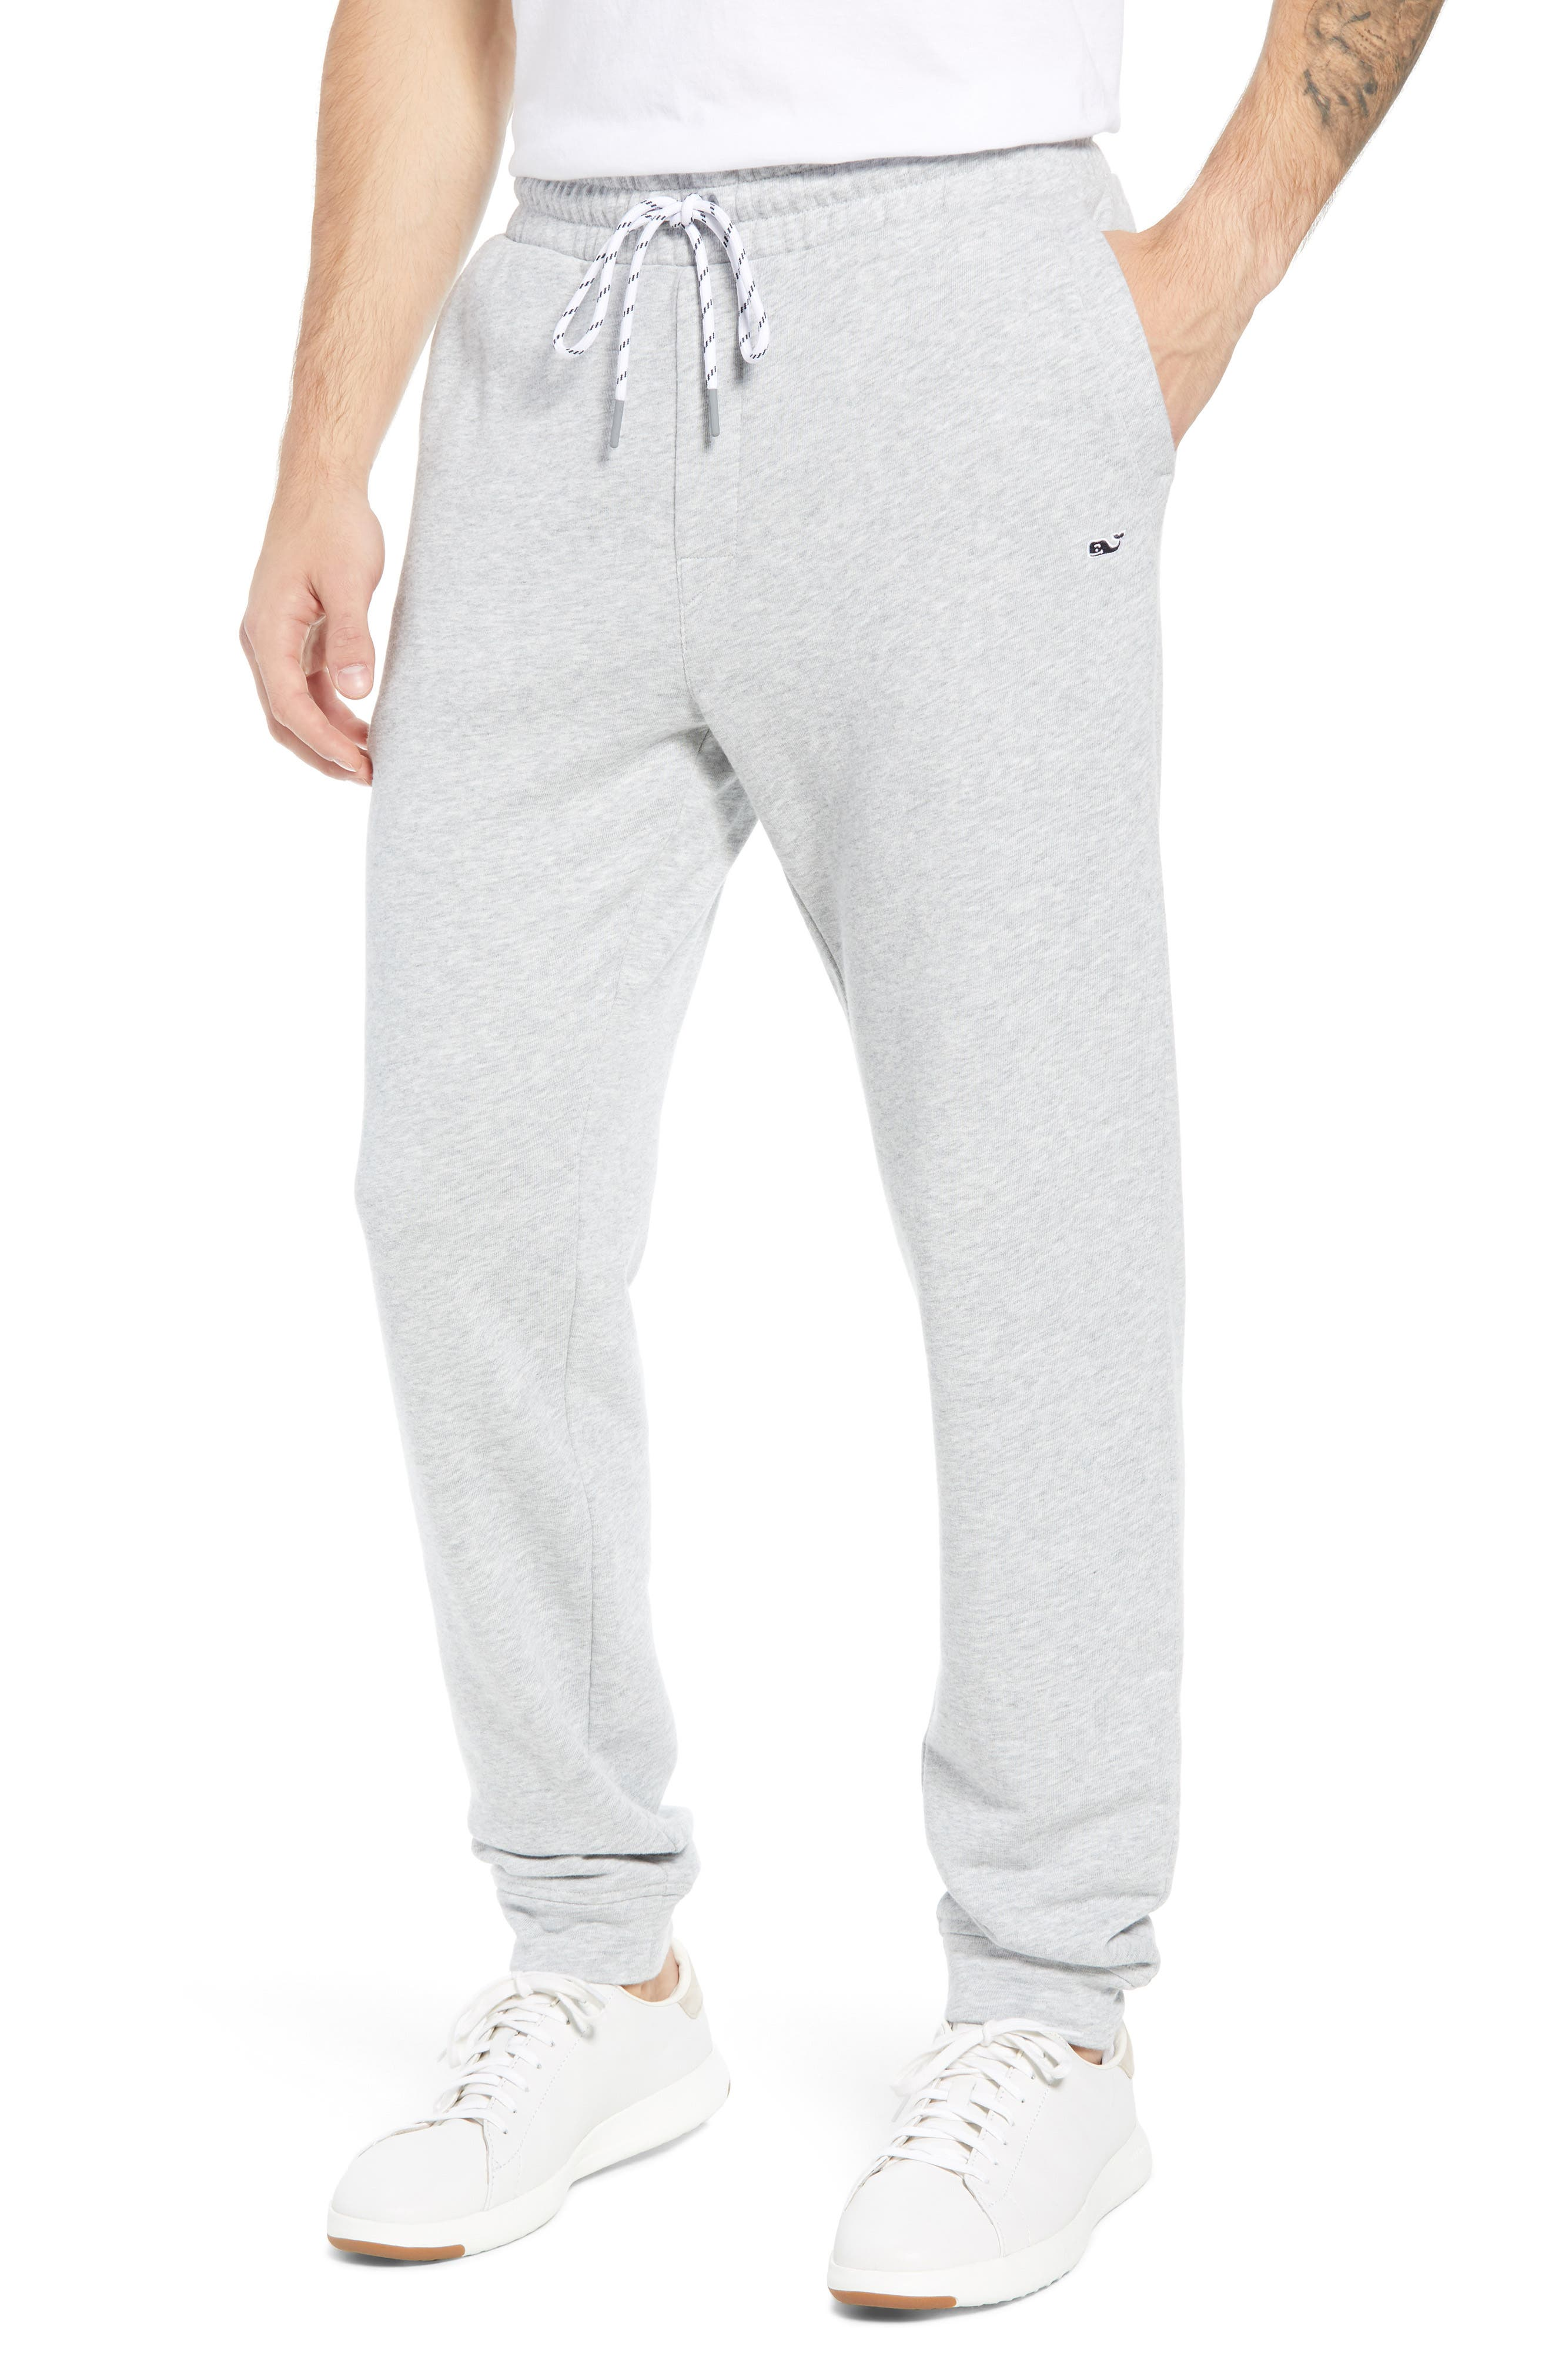 Heritage French Terry Knit Jogger Pants,                         Main,                         color, GRAY HEATHER